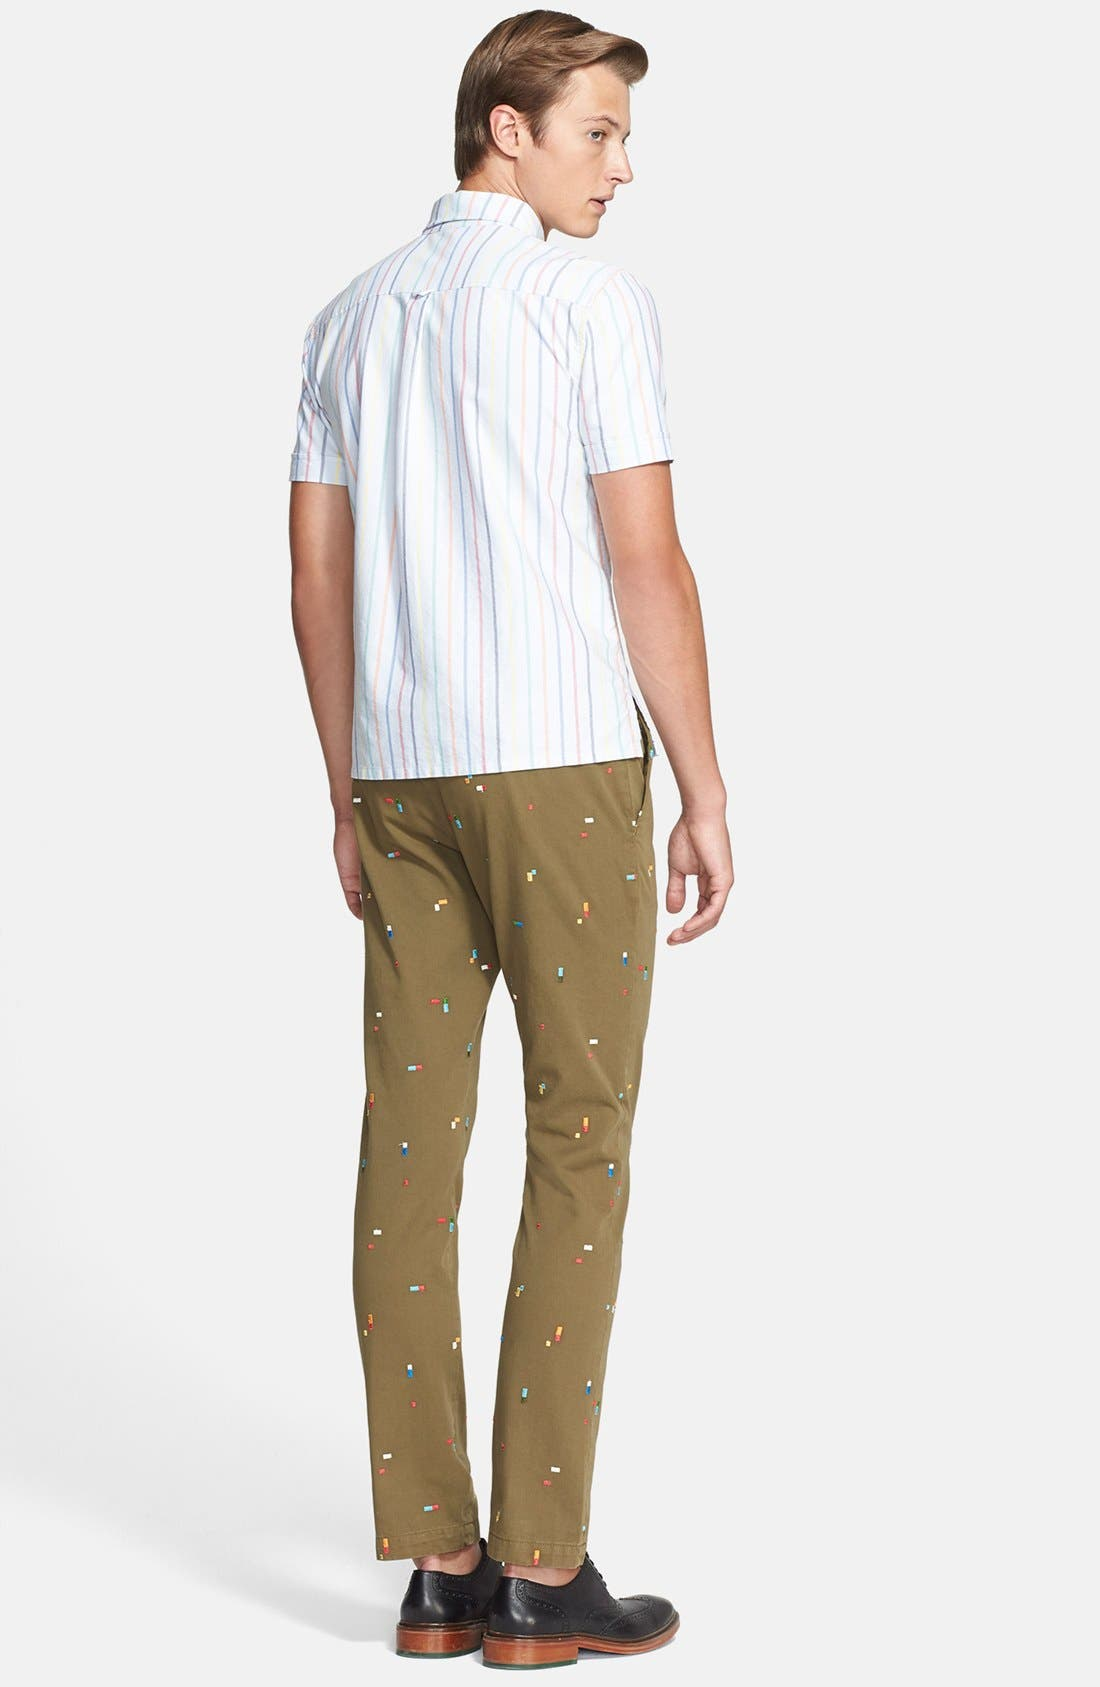 BAND OF OUTSIDERS, Slim Fit Embroidered Chinos, Alternate thumbnail 2, color, 411